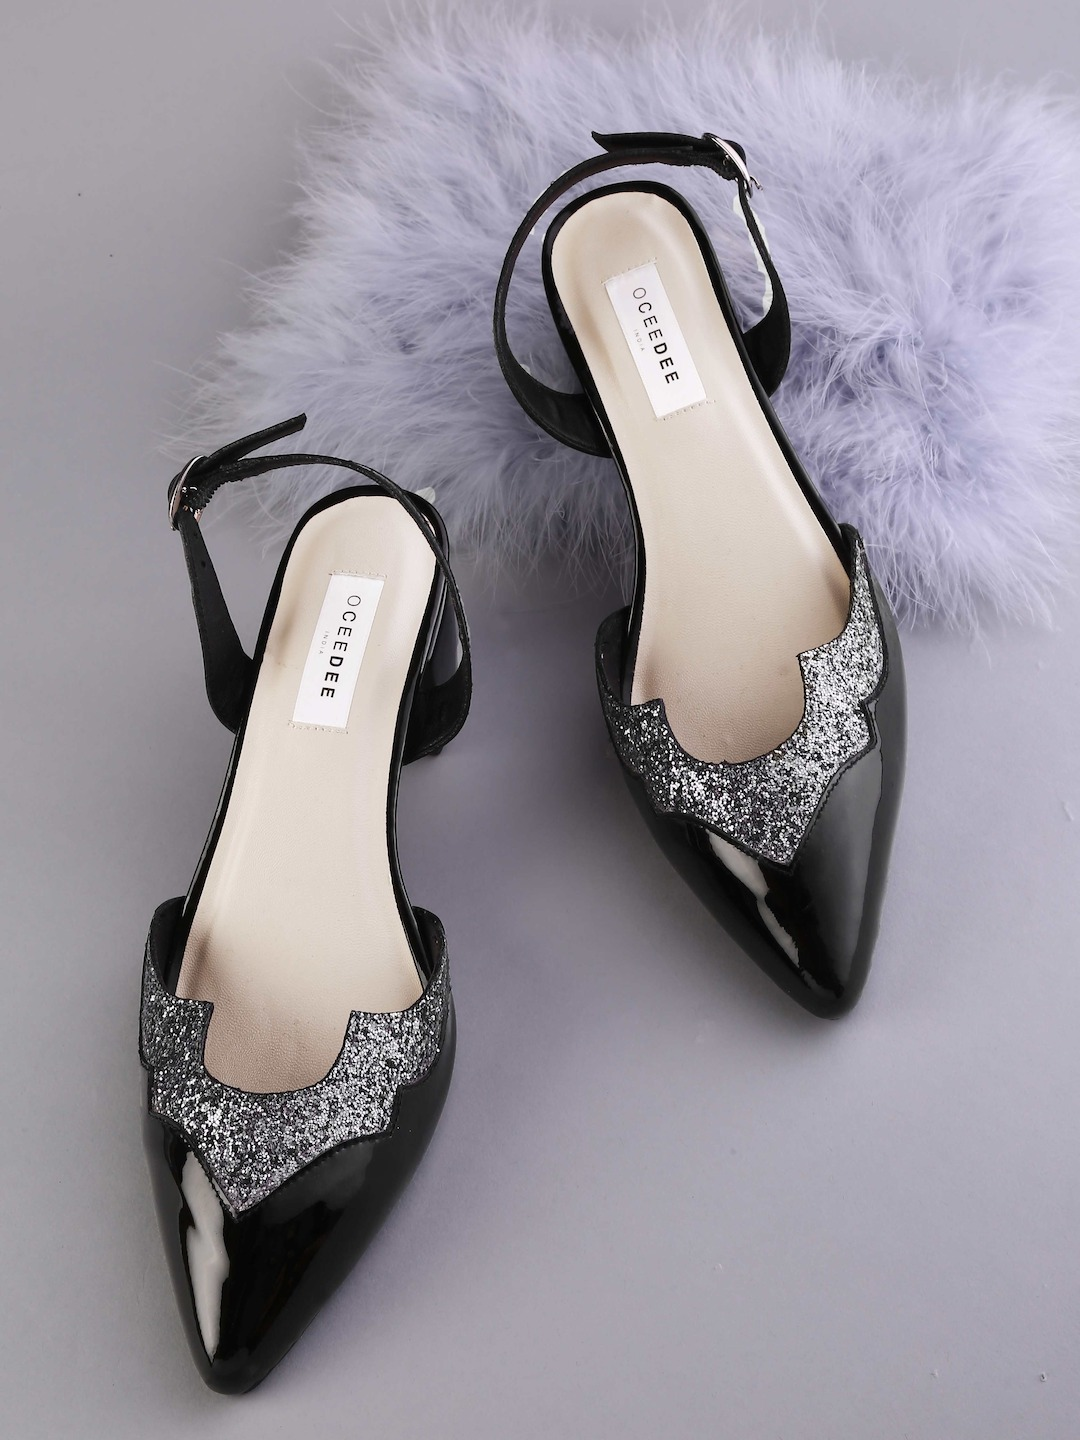 Black & Gunmetal-Toned Colourblocked Pumps